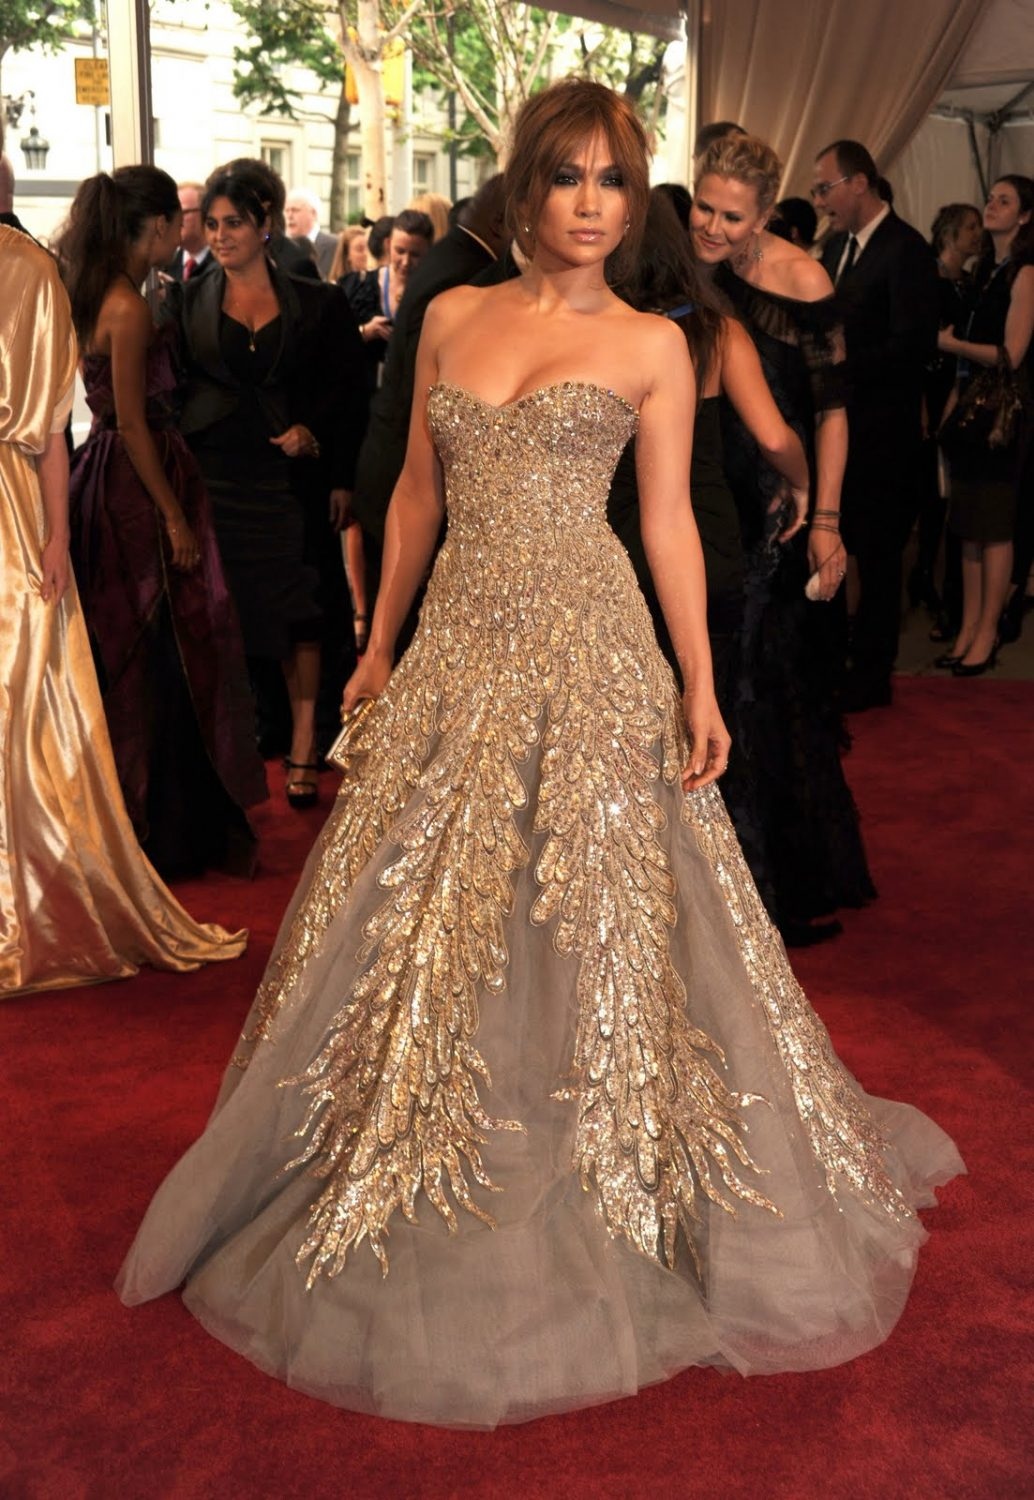 J low at met ball